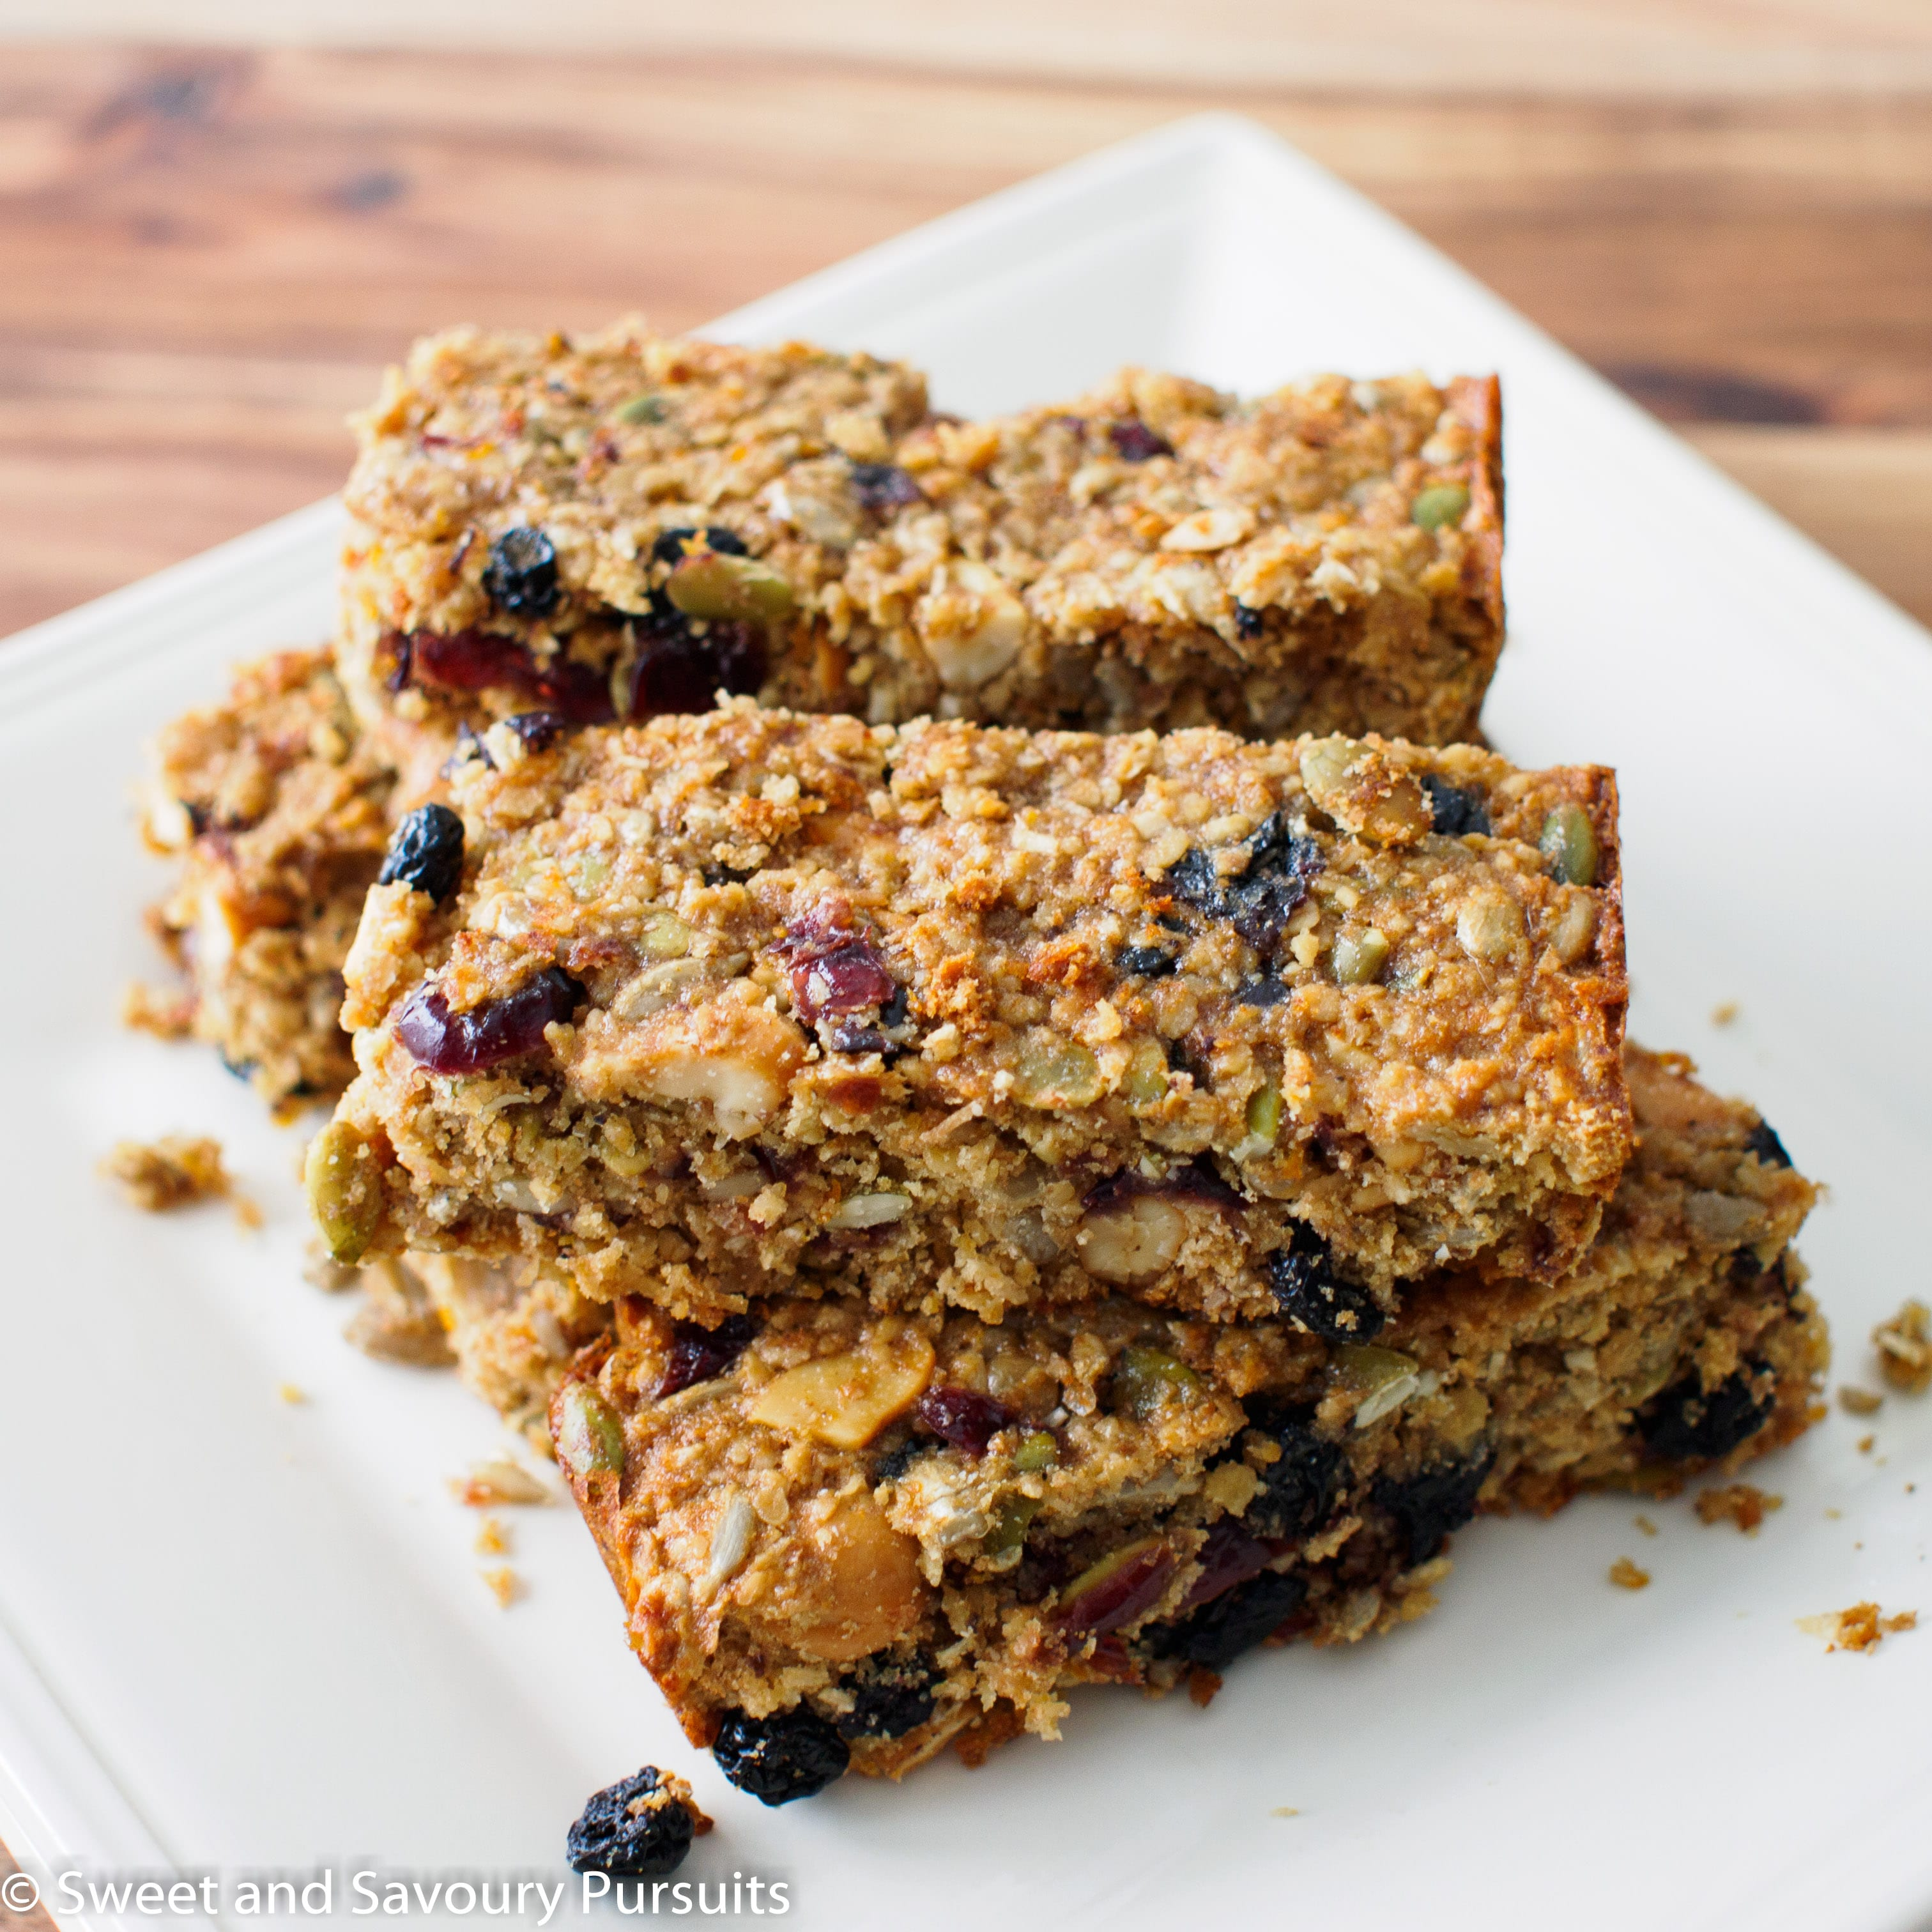 Oat, Fruit and Seed Bars